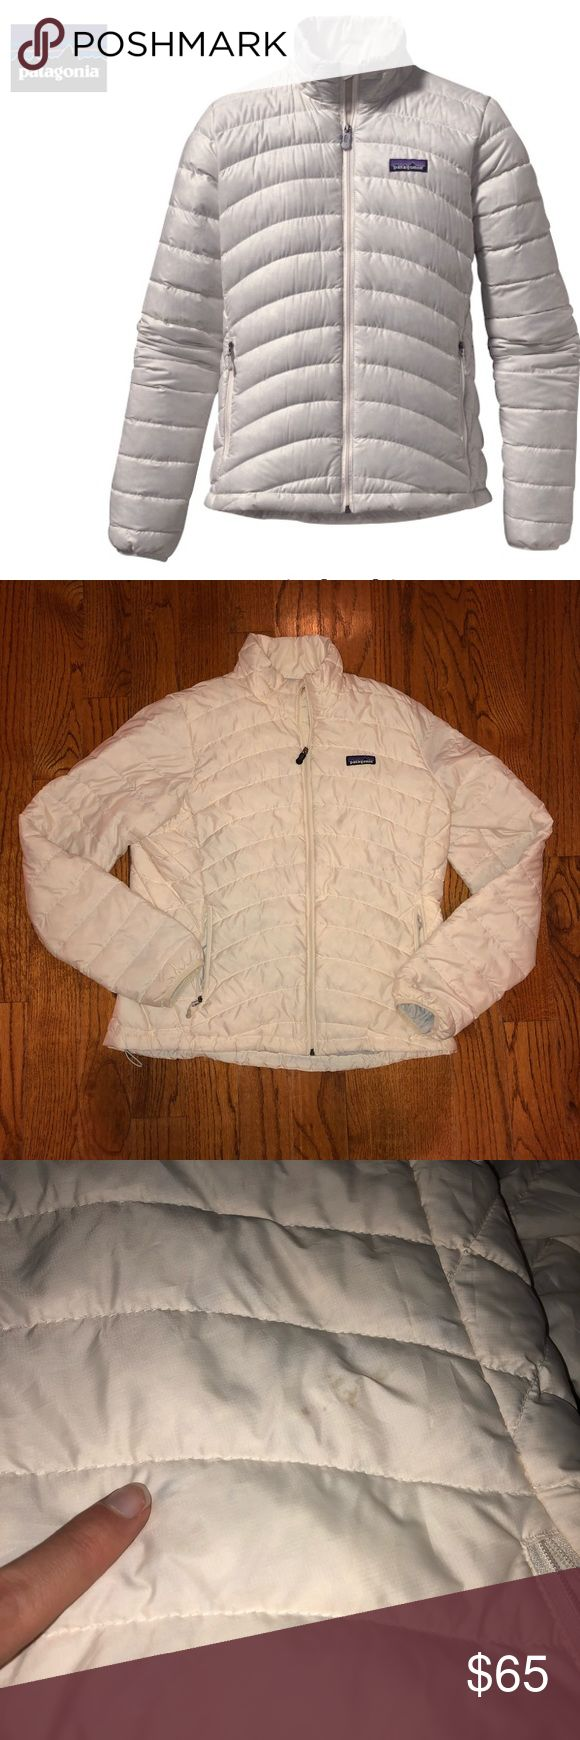 Patagonia Old Style Puffer Jacket Cream Patagonia women's down sweater size large. Really beautiful Patagonia down jacket in a cream color. Bought from another seller without proper description & could not return. Has a small burn hole on the bottom of the back of the jacket. Also a small mark on the front. Just wanting to get back something of what I paid! Really a great quality jacket - $219 retail! Patagonia Jackets & Coats Puffers